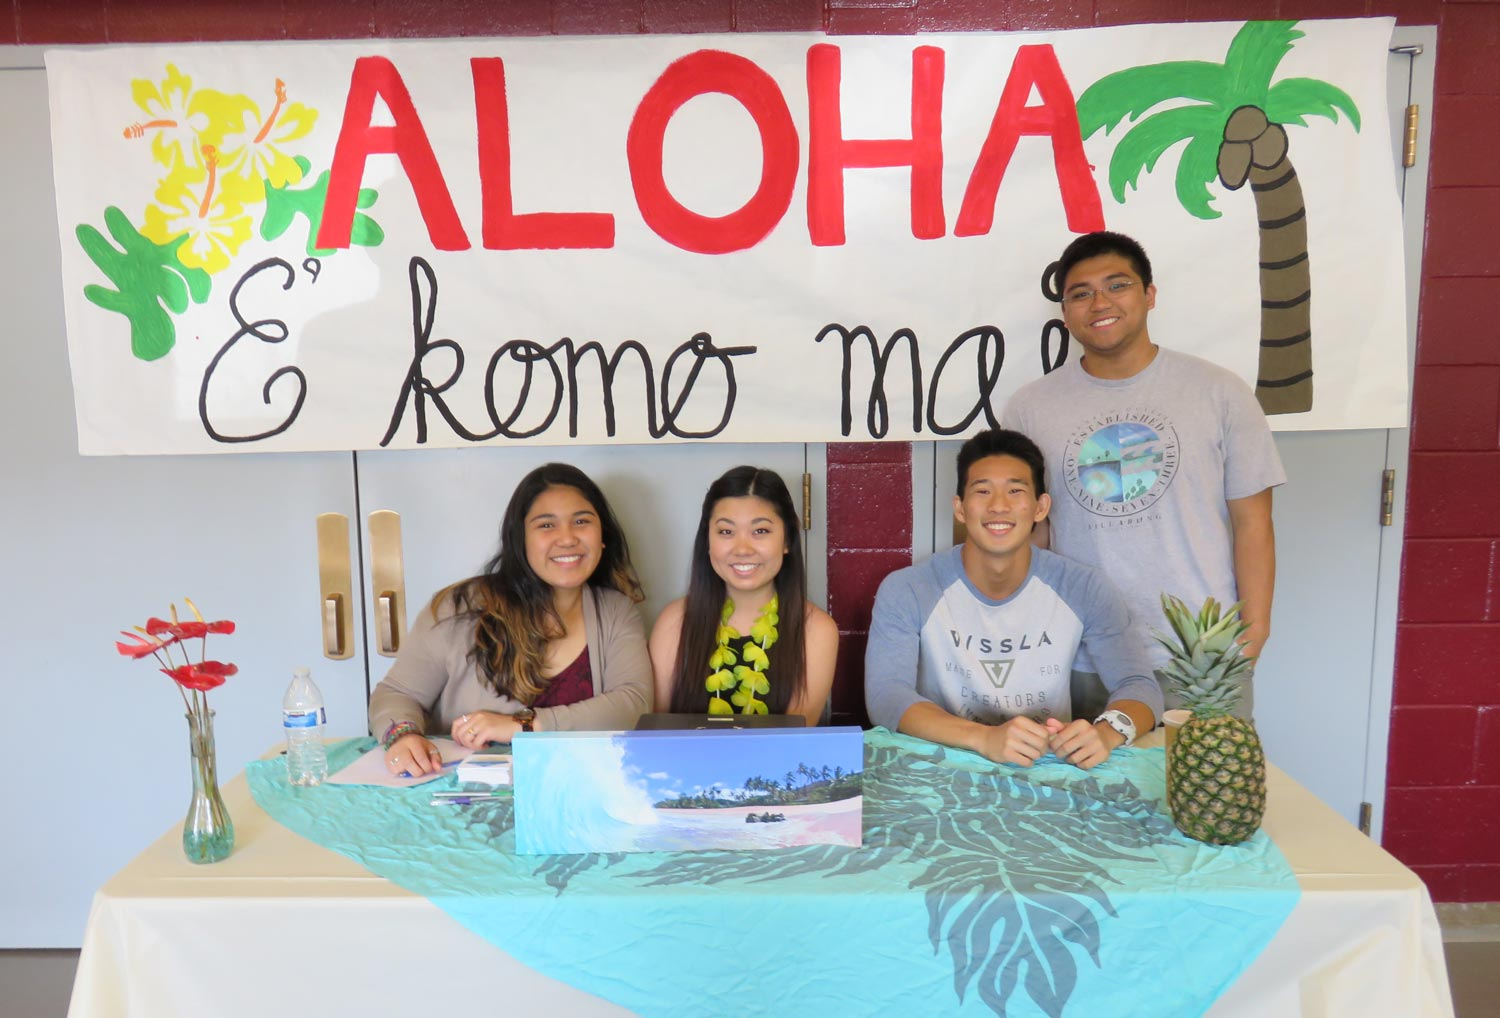 Members of the Hawaii club at the SPU gymnasium